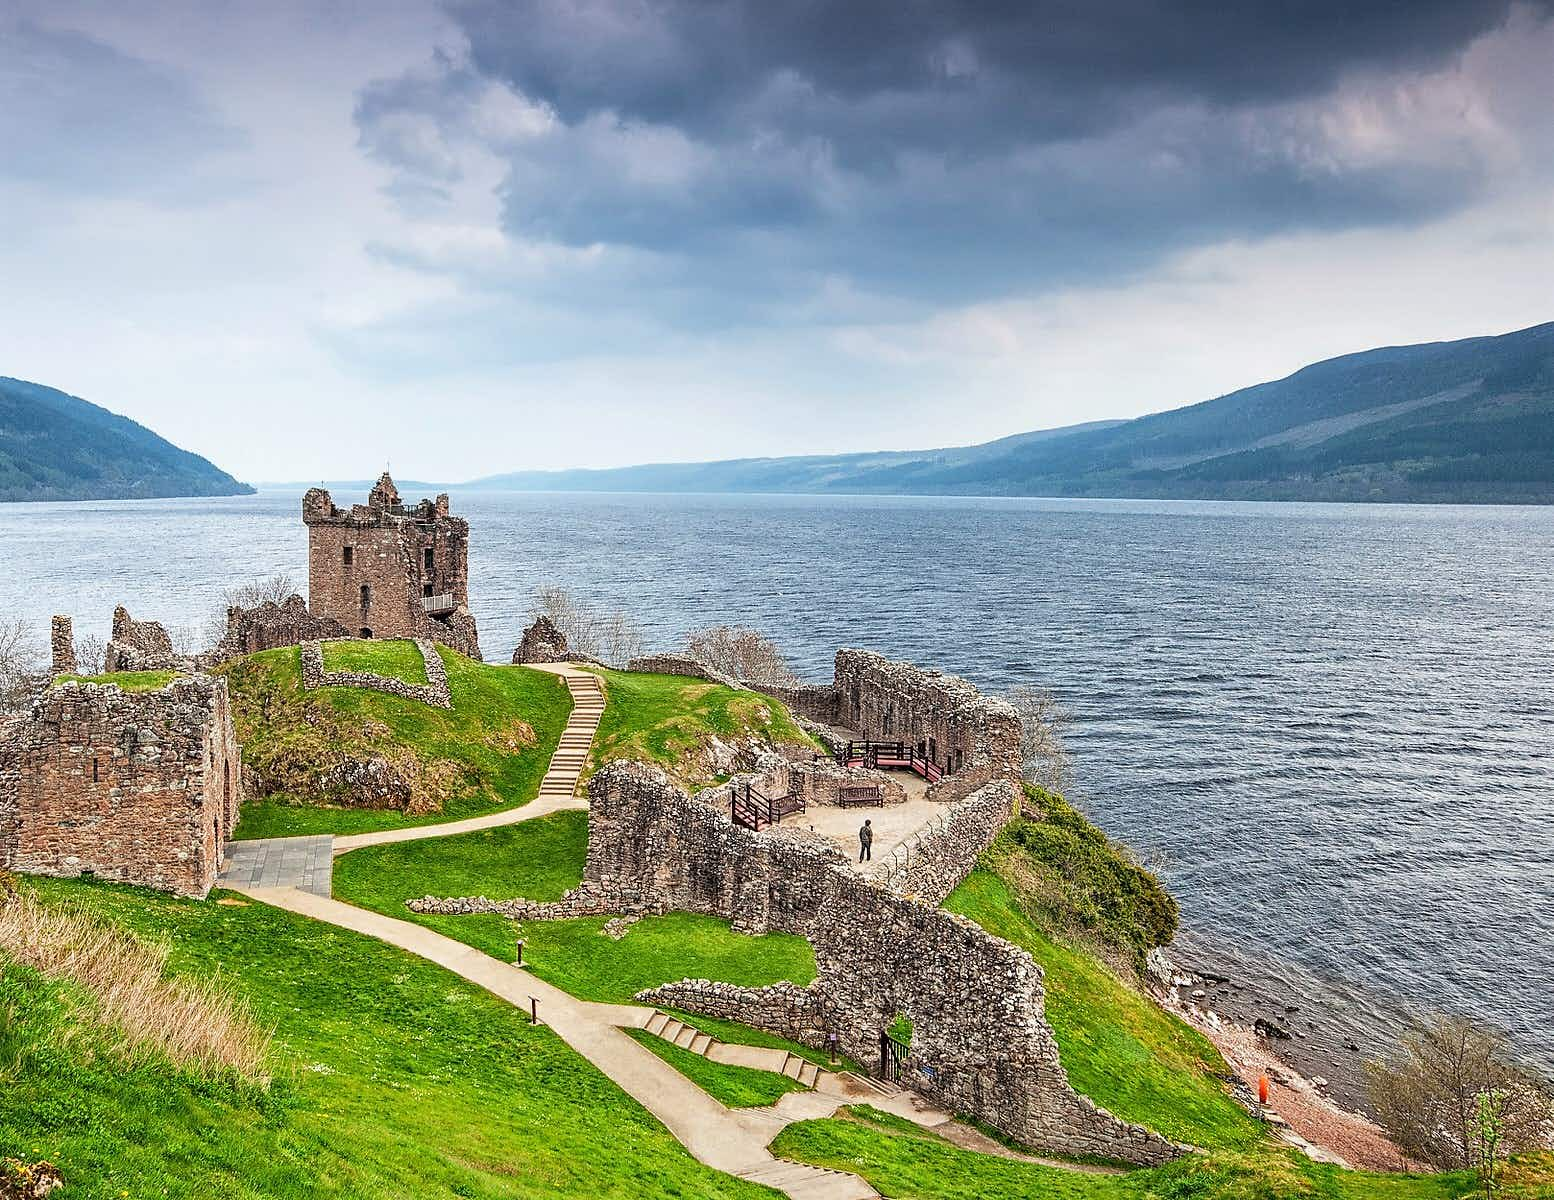 Urquhart Castle has kept an eye out for the Loch Ness Monster since the 13th century © Botond Horvath / Shutterstock